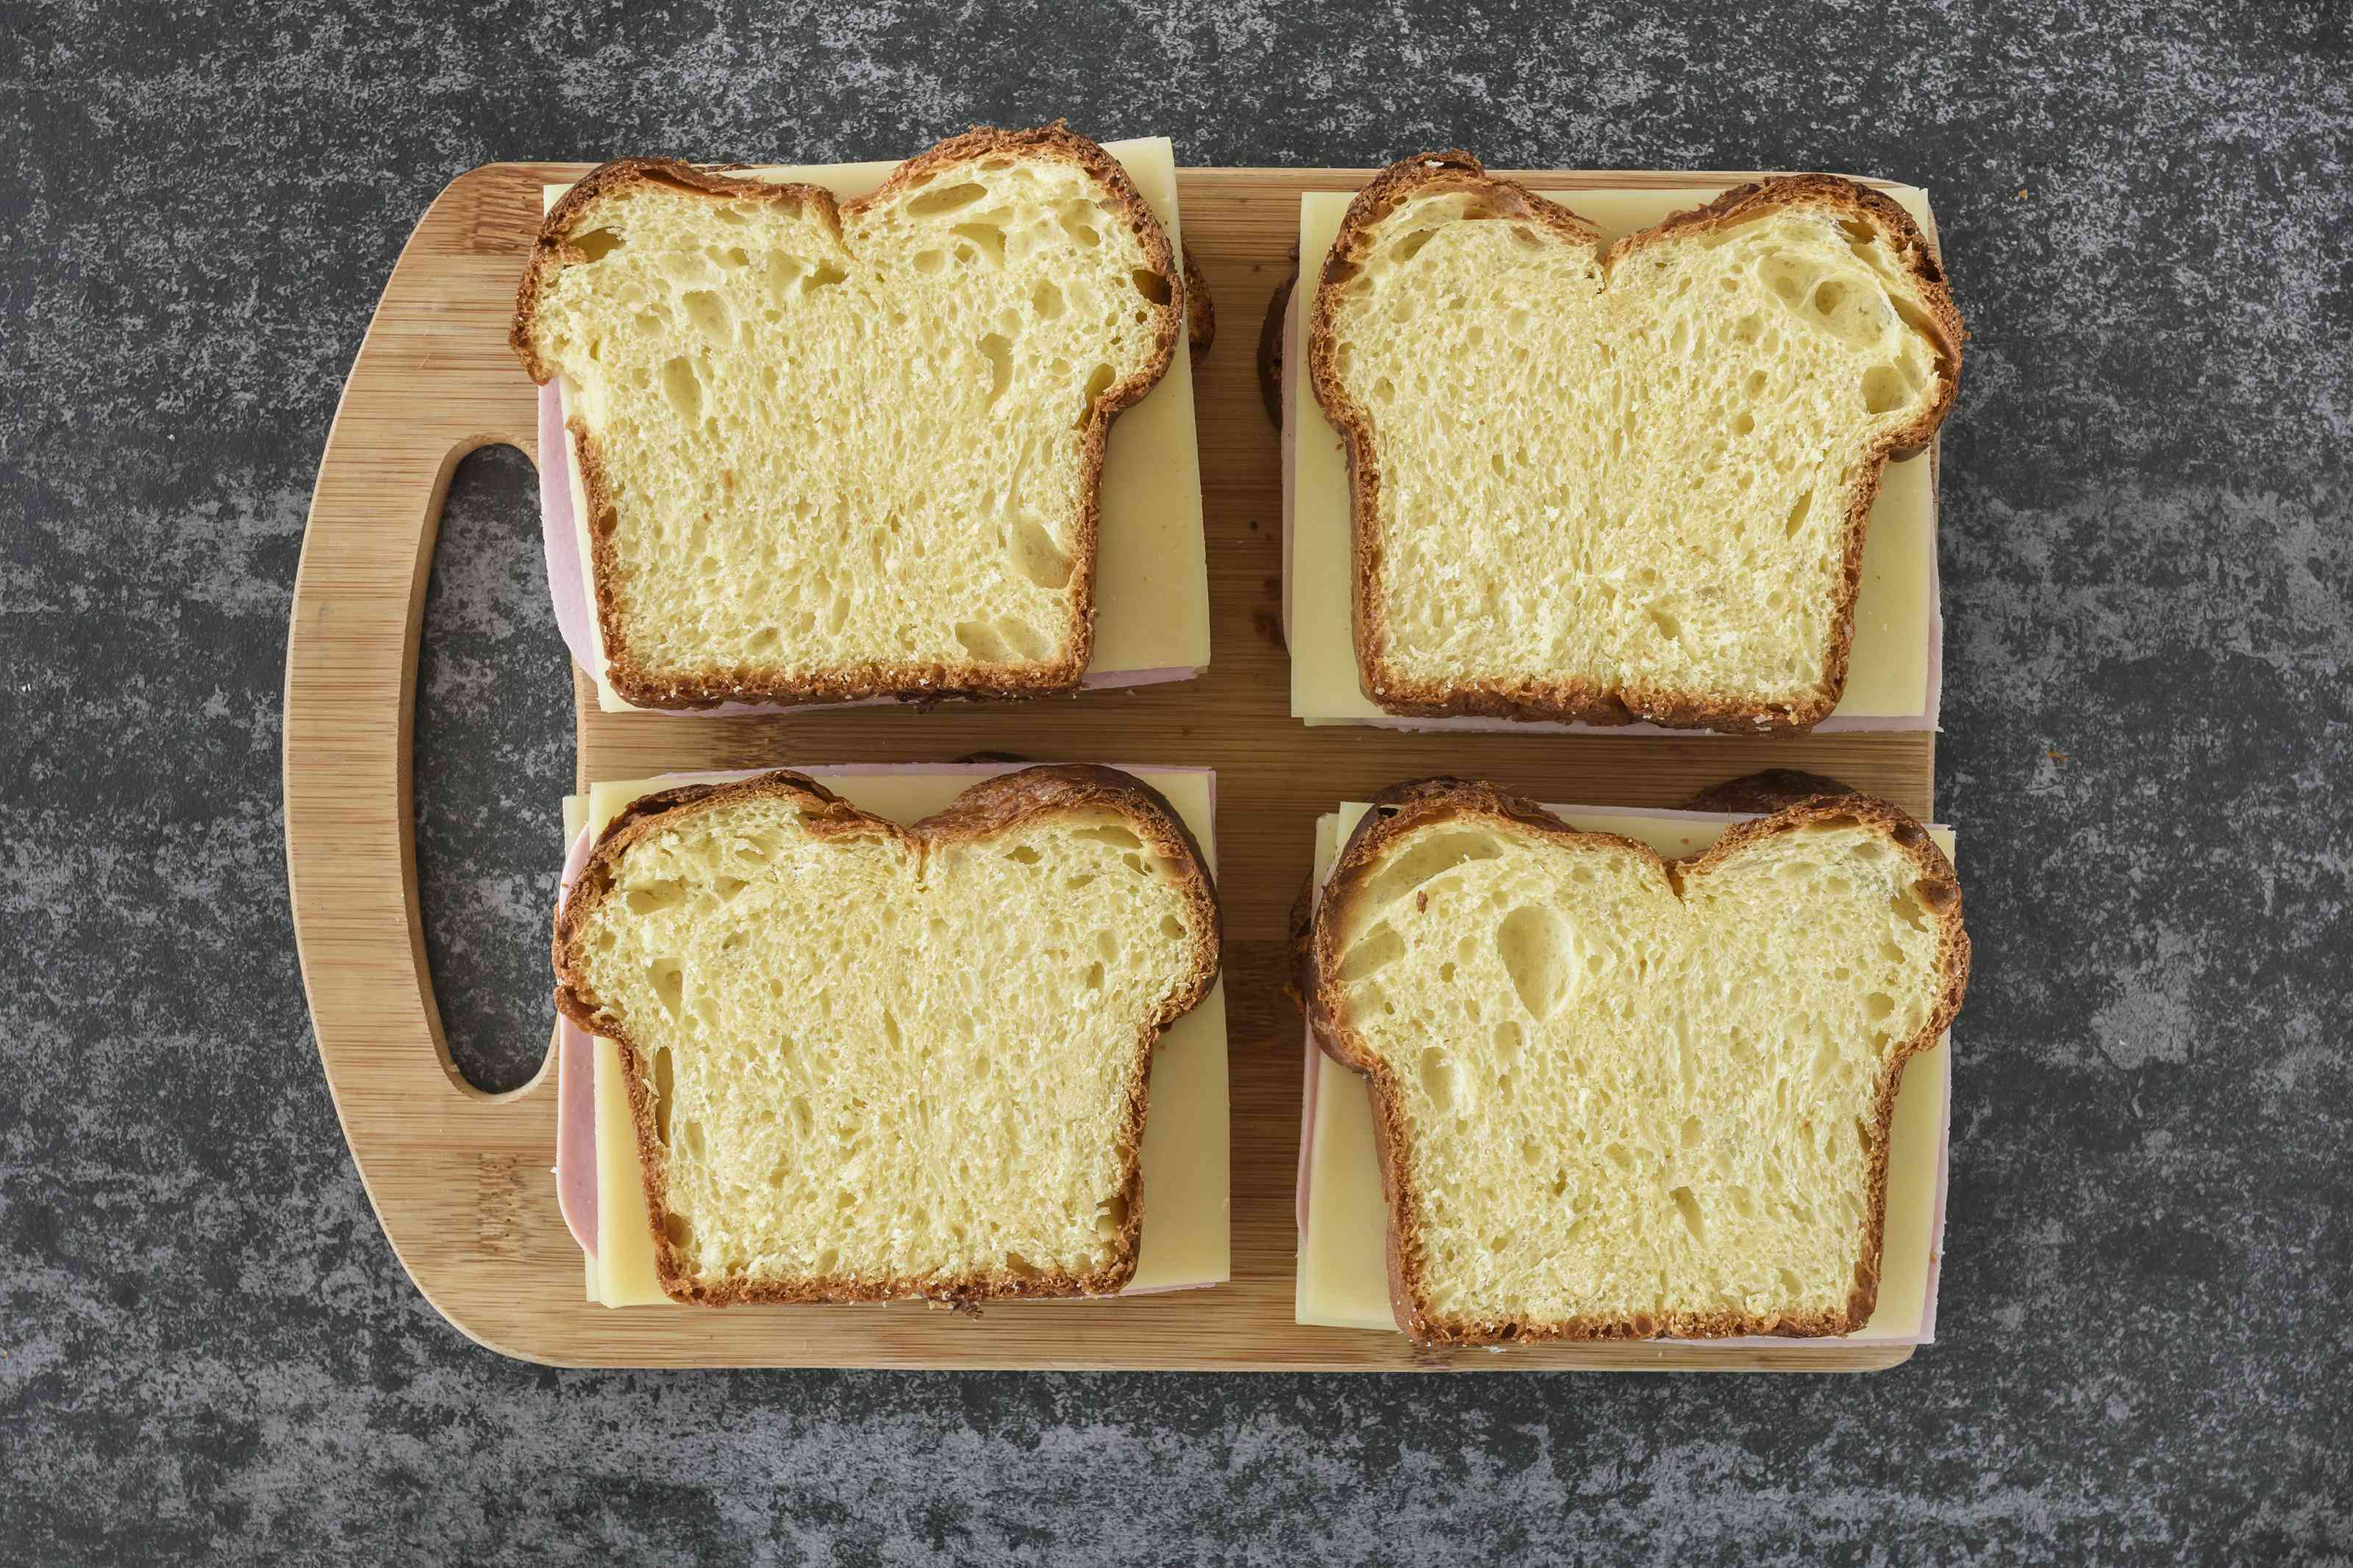 Place Swiss cheese on bread